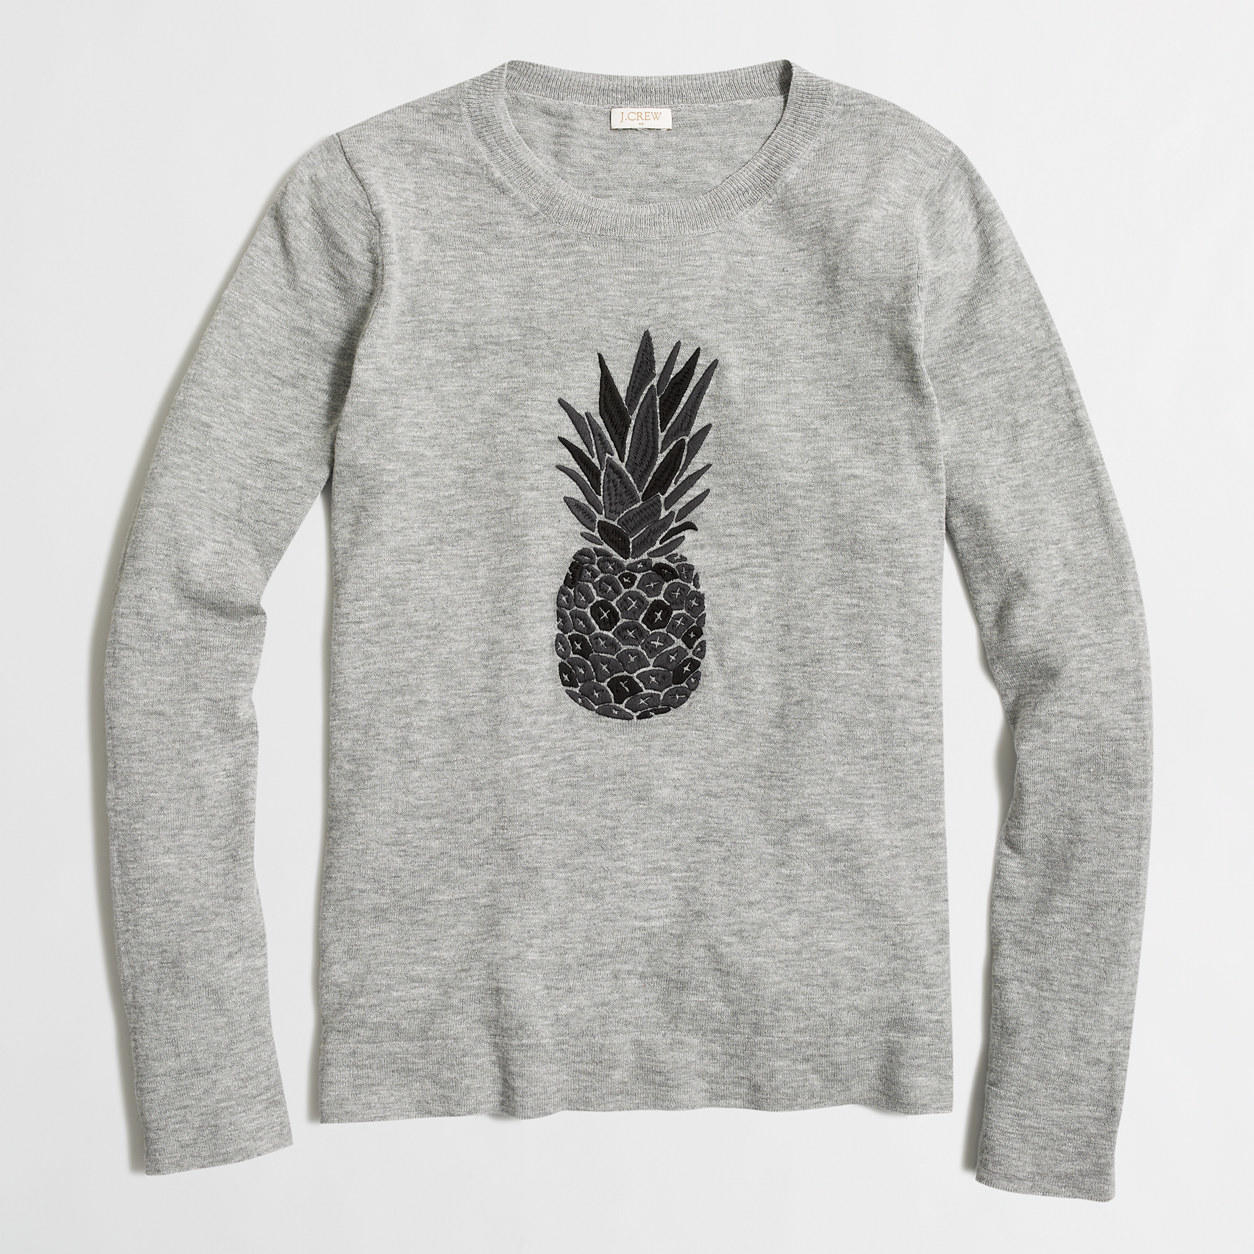 Factory embroidered pineapple sweater from J.Crew Factory